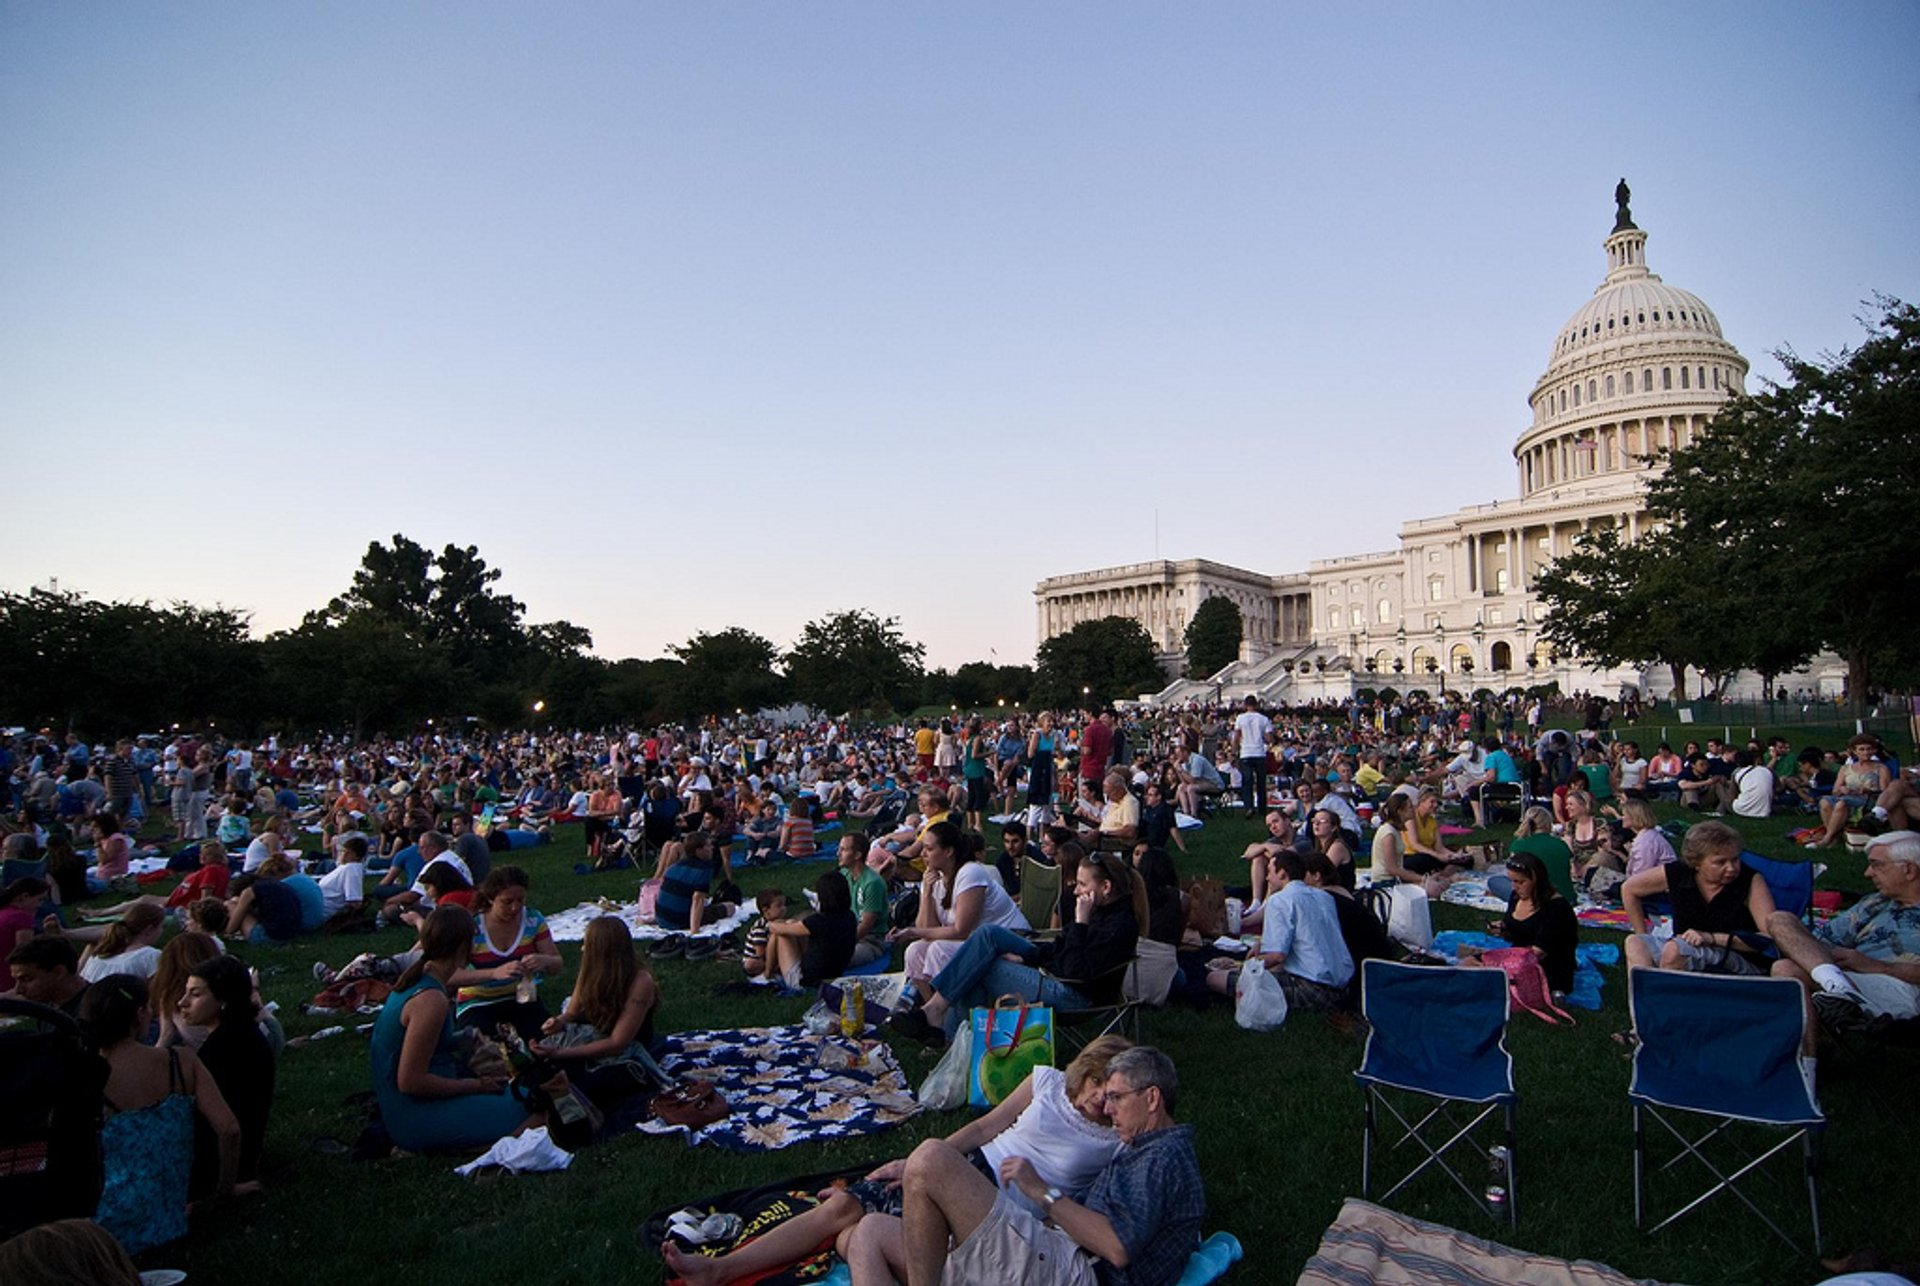 Labor Day Concert in Washington, D.C. - Best Season 2020